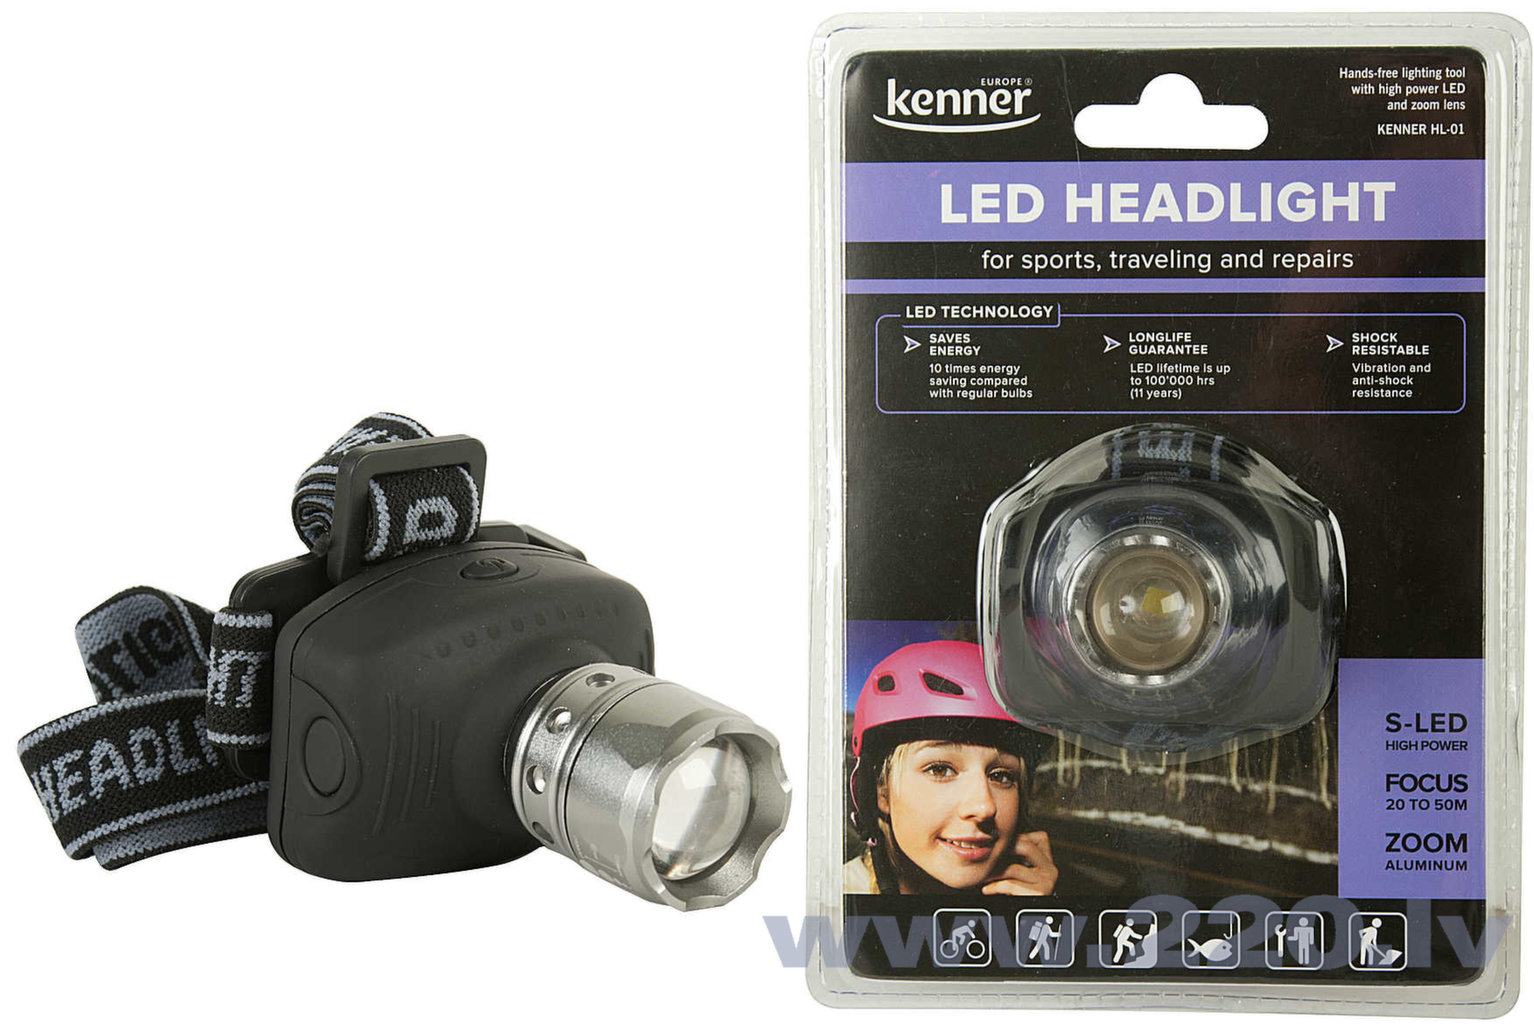 KENNER HL-01 HI-LED zoom